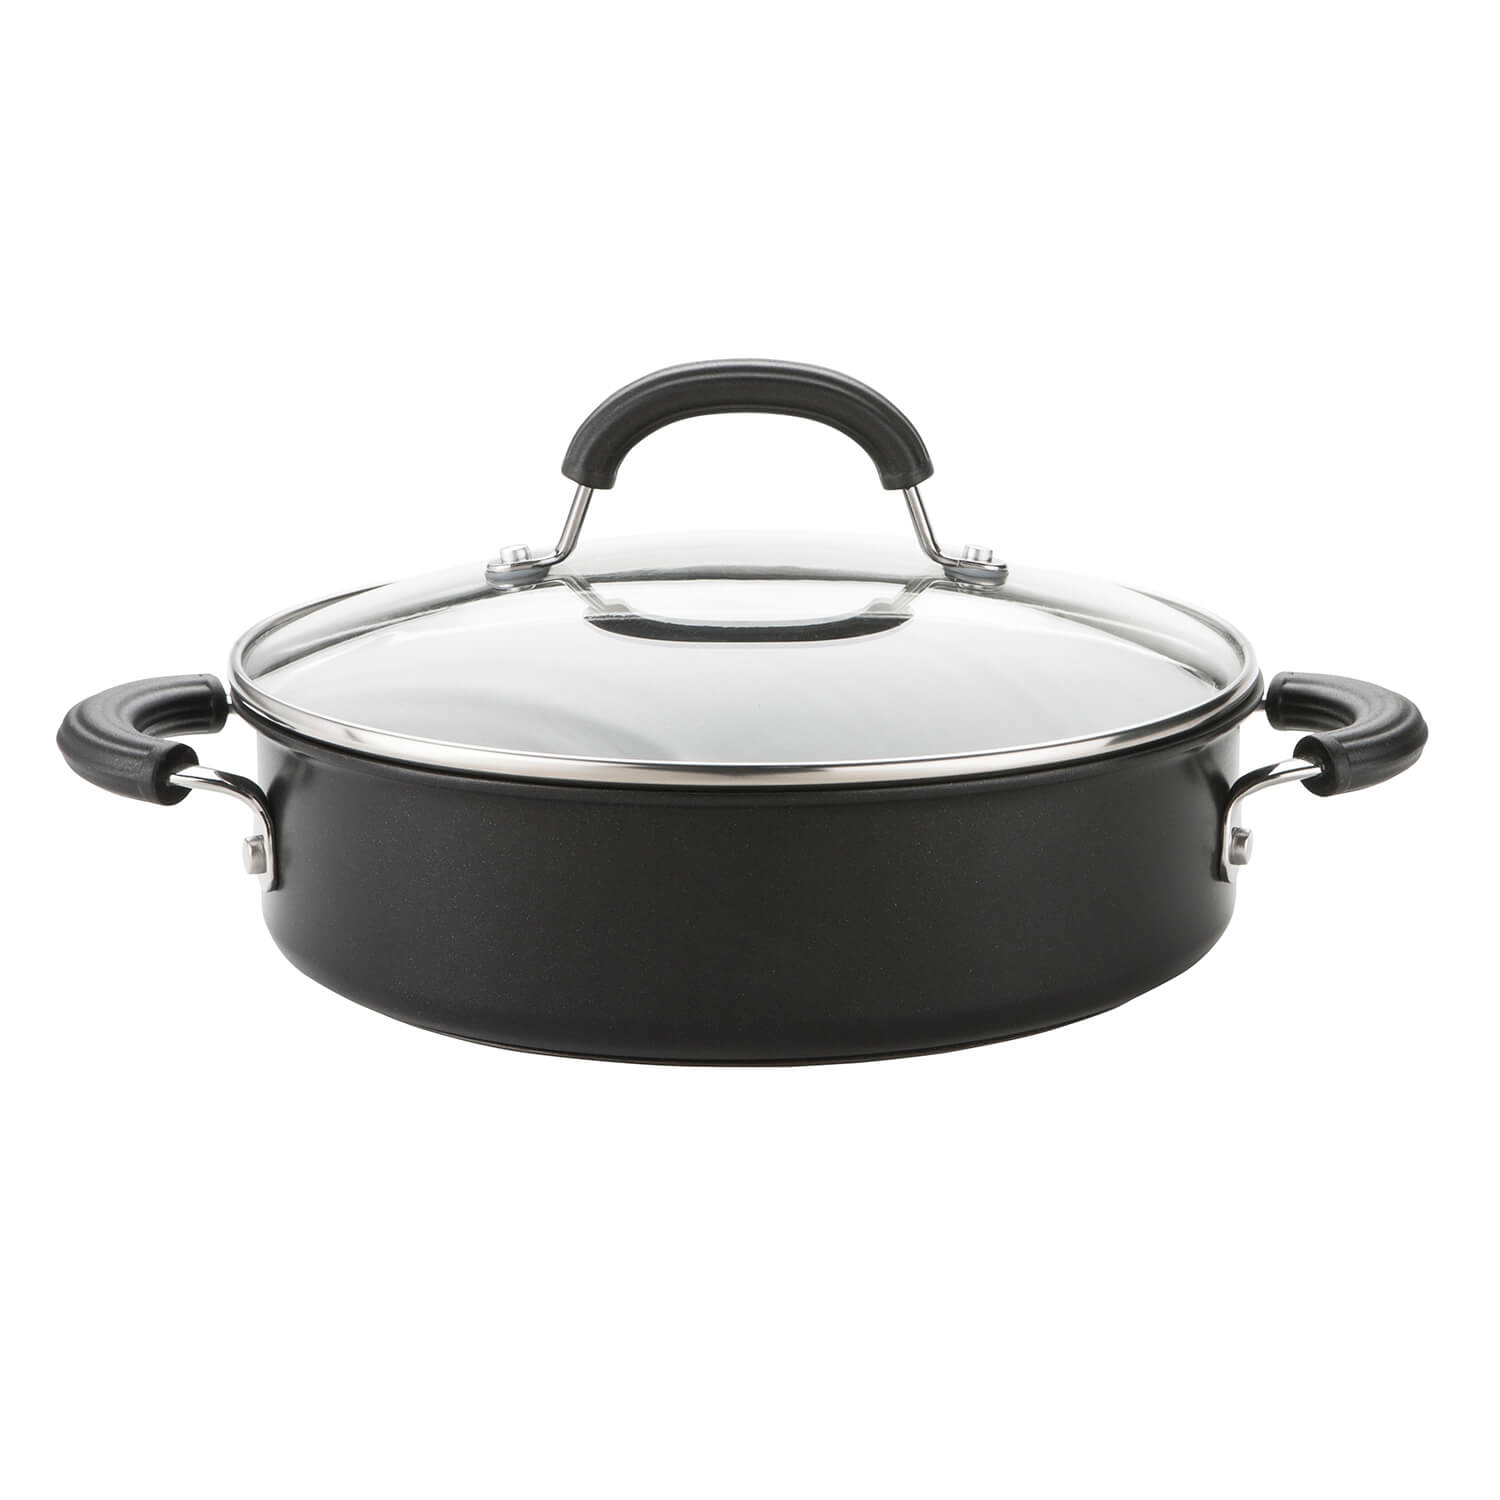 Image of Circulon Shallow Casserole 24cm, Black